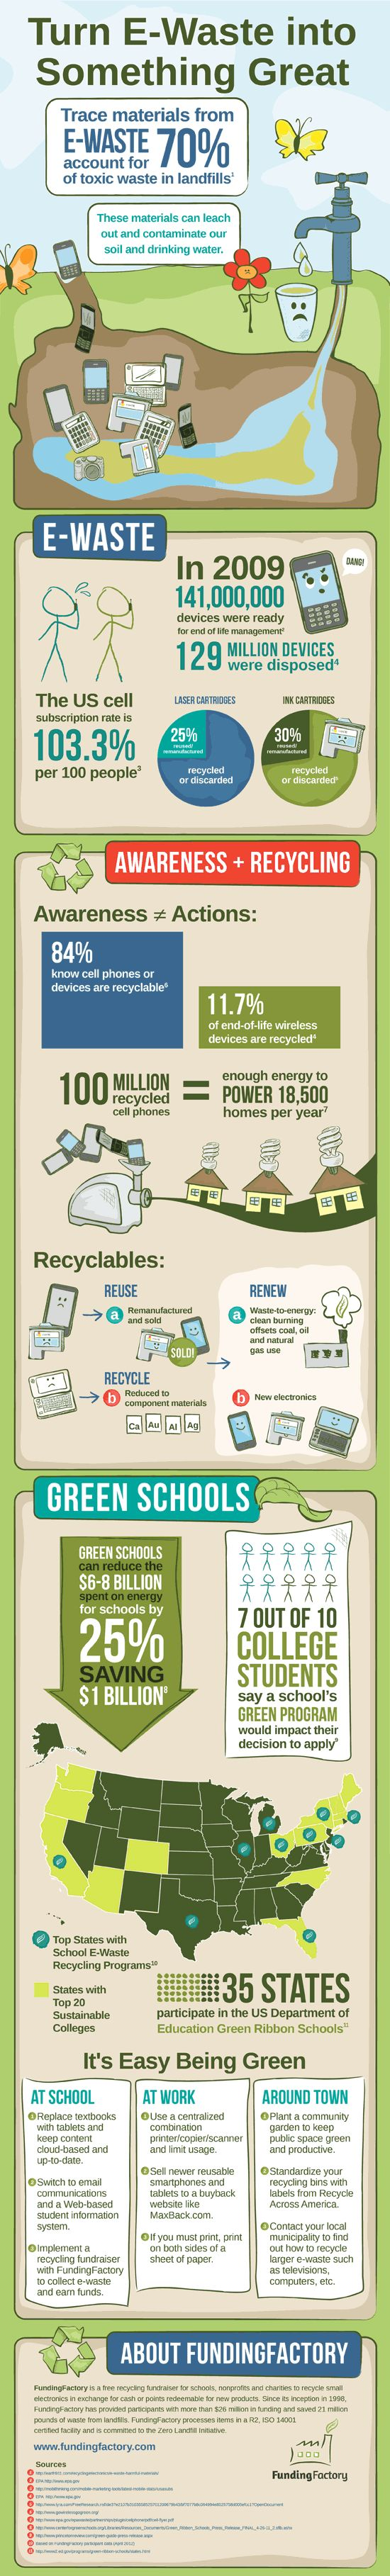 Reduce reuse recycle activities - Find This Pin And More On Recycling